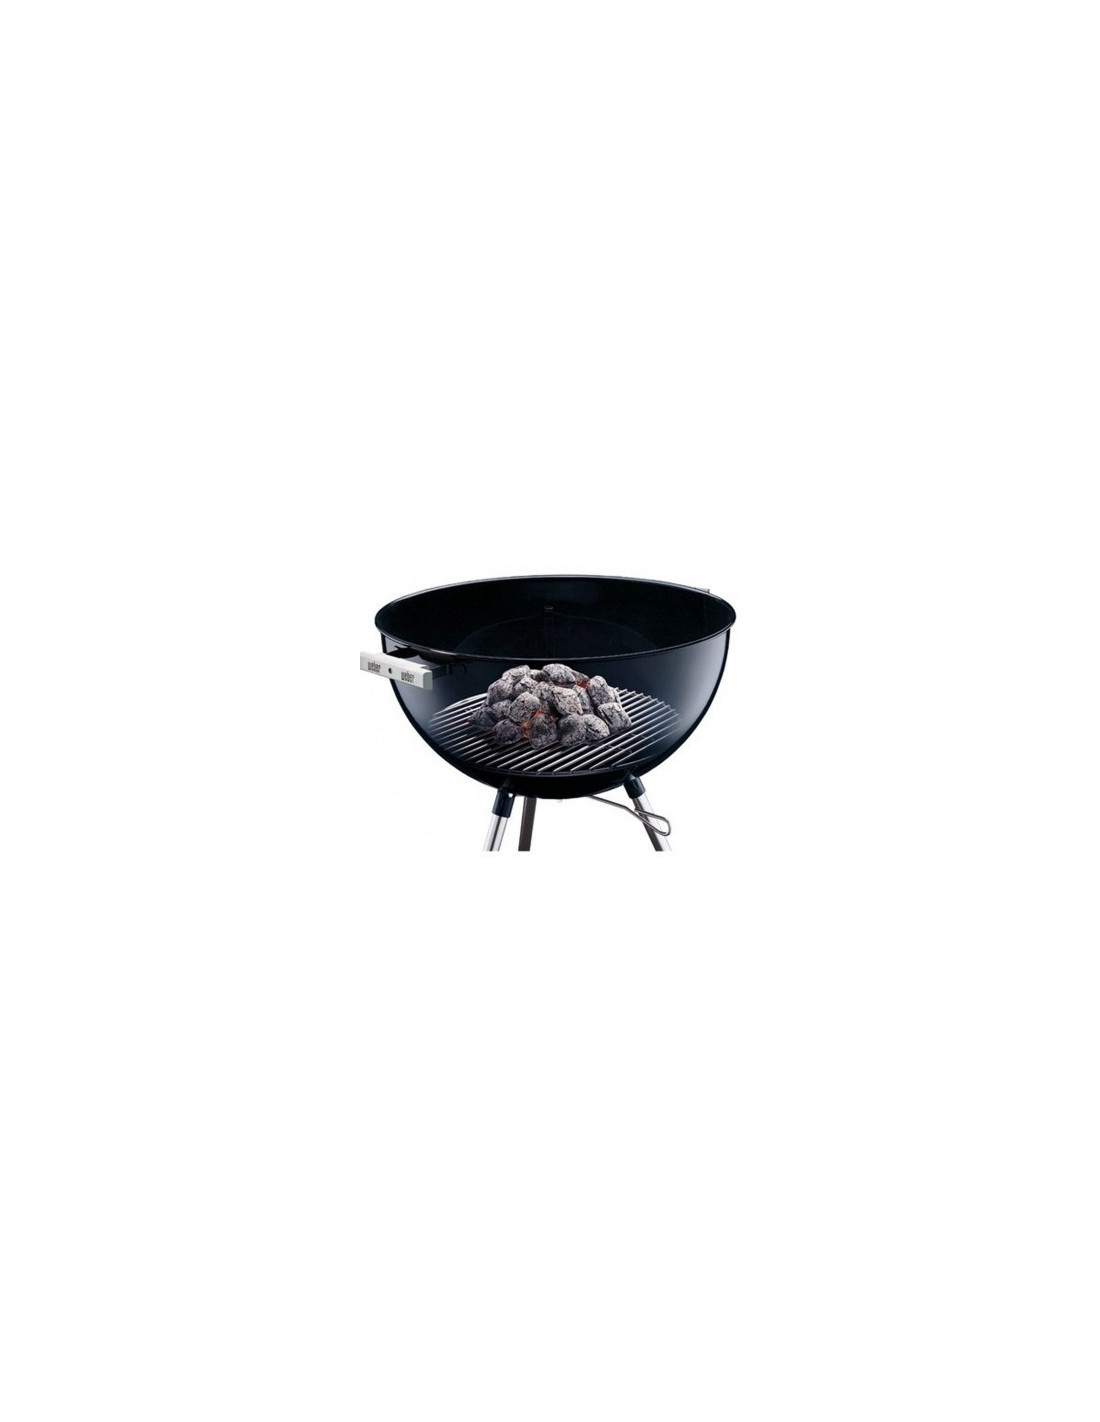 accessoire barbecue grille foy re 47 cm bbq. Black Bedroom Furniture Sets. Home Design Ideas